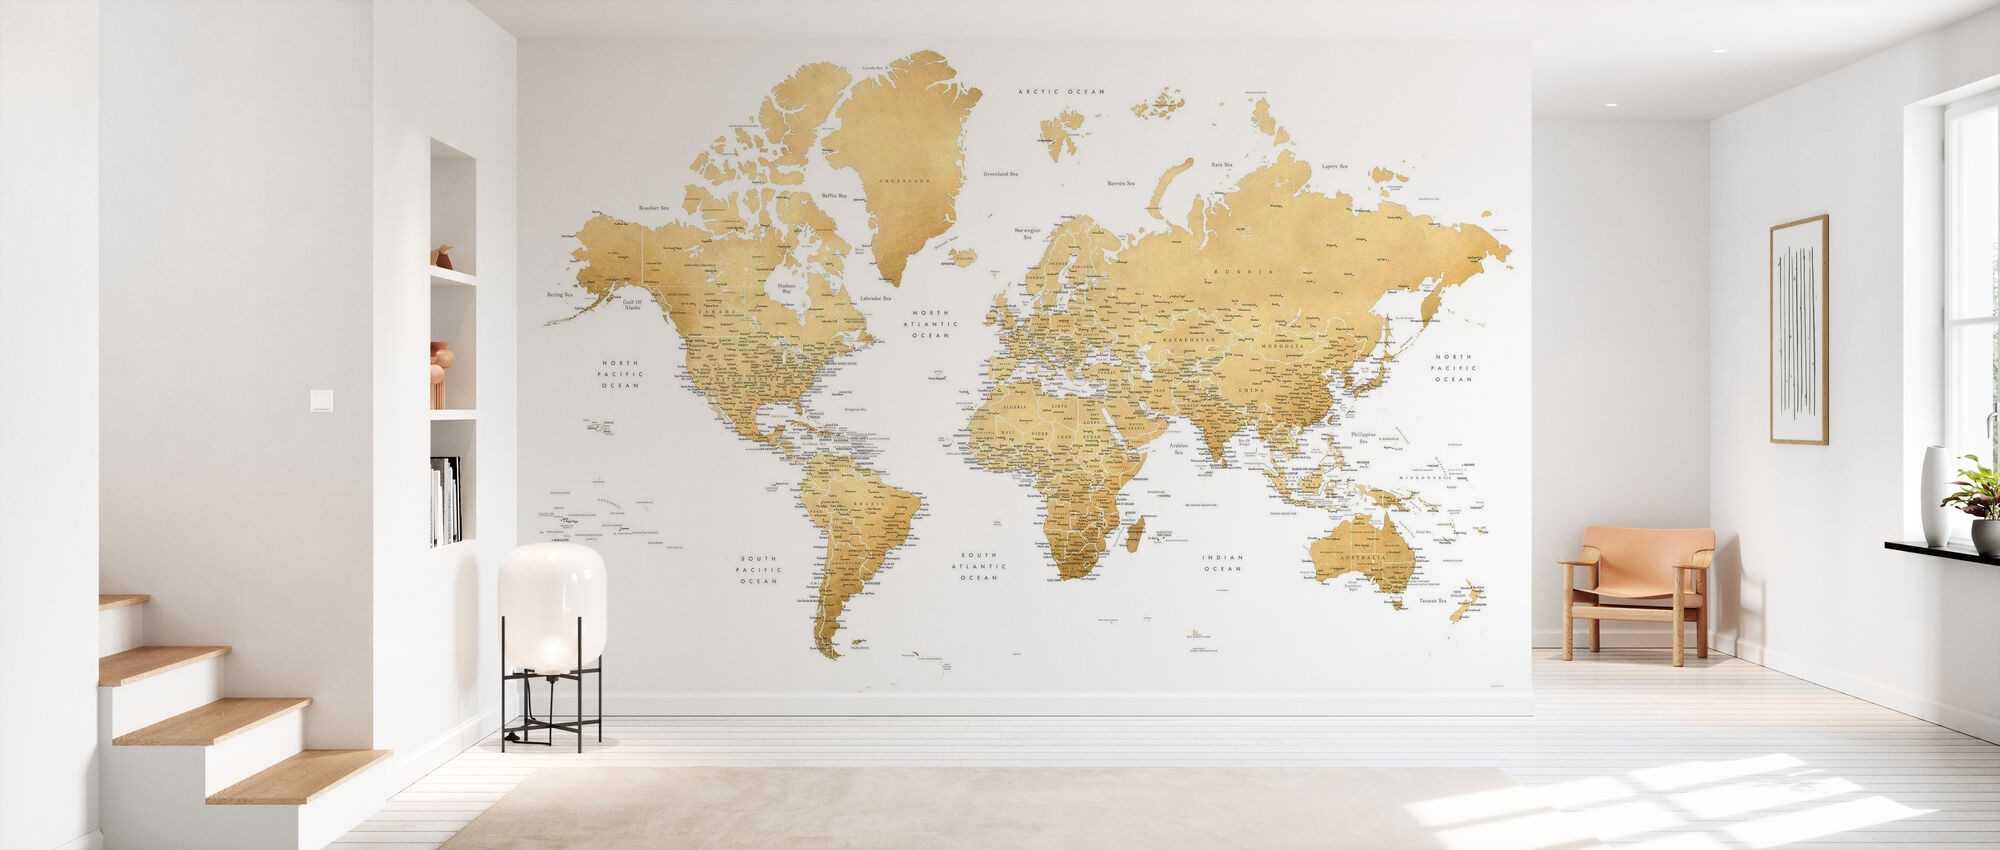 World Map with Cities - Wallpaper - Hallway